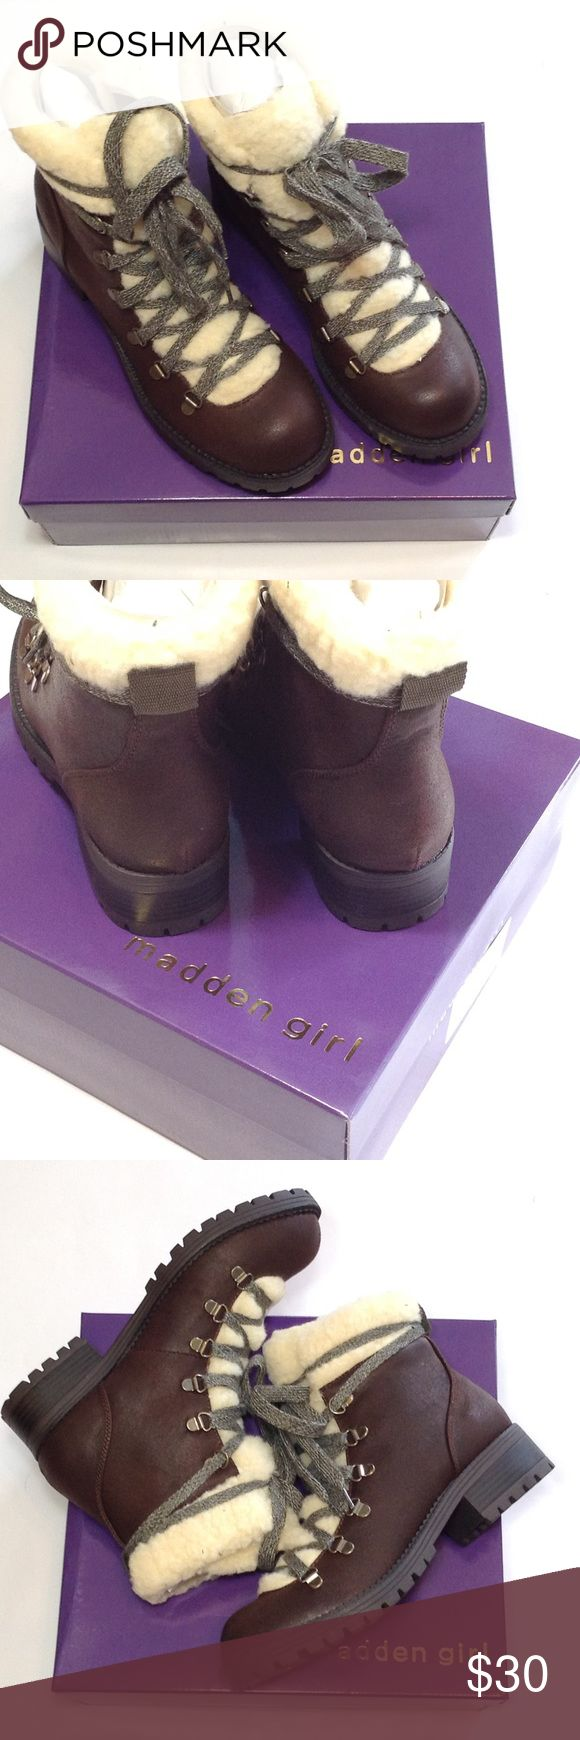 """item!  Madden Girl hiking boot So ready for Fall!!  Boot has faux-shearling tongue & collar. Shaft about 5"""" form arch, boot opening about 6"""" around. Madden Girl Shoes"""